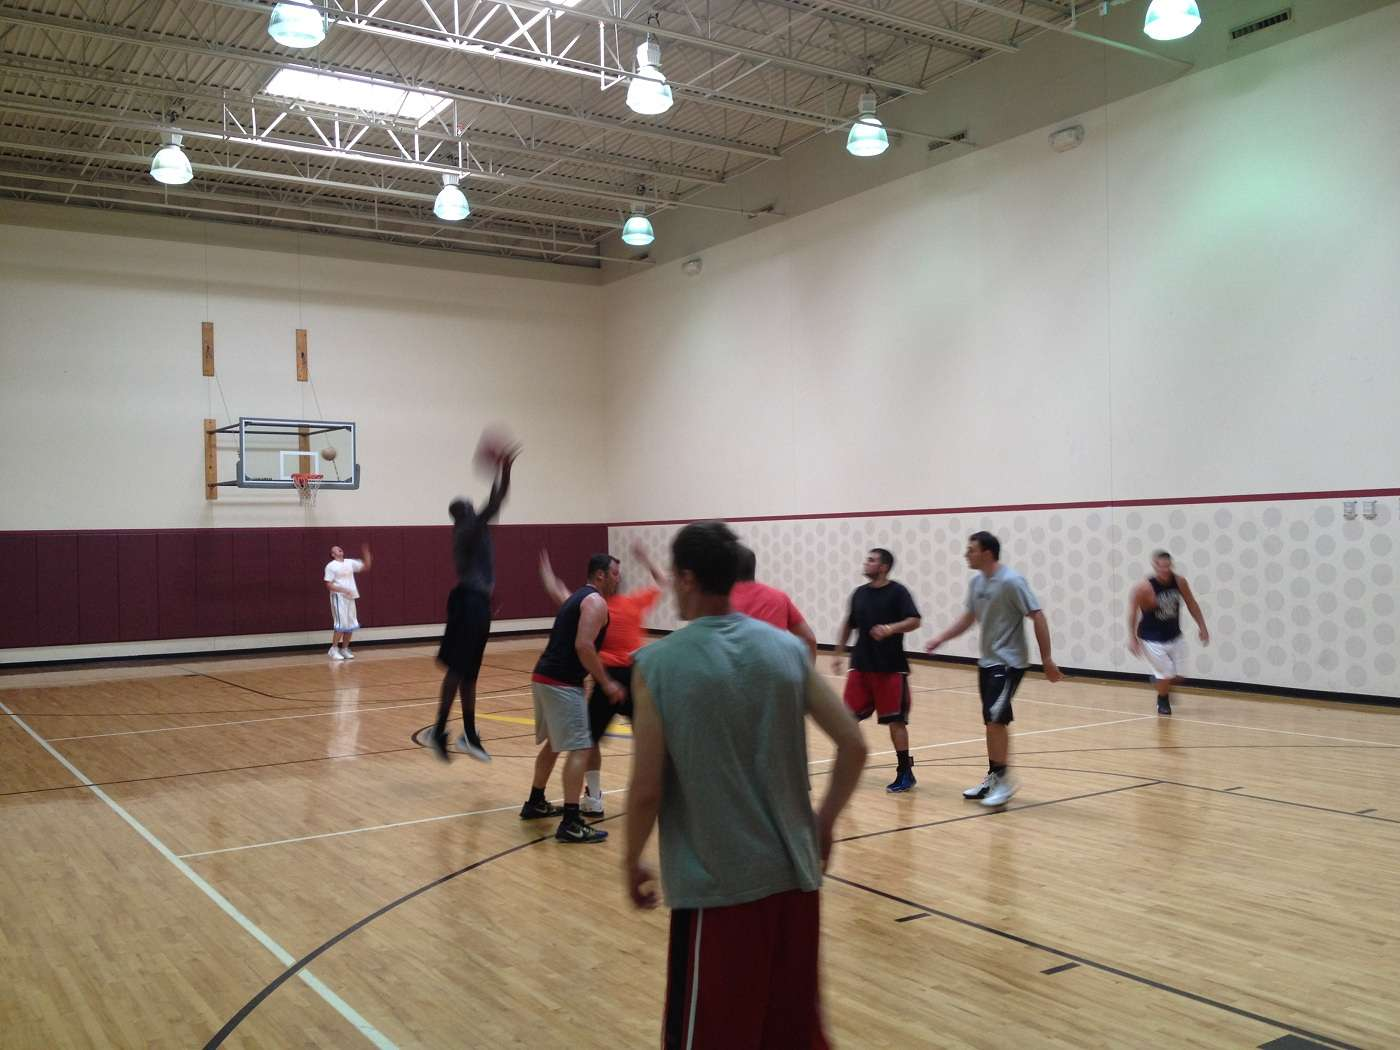 Oakdale (PA) United States  city pictures gallery : Bridgeville, PA Basketball Court: LA Fitness Courts of the World